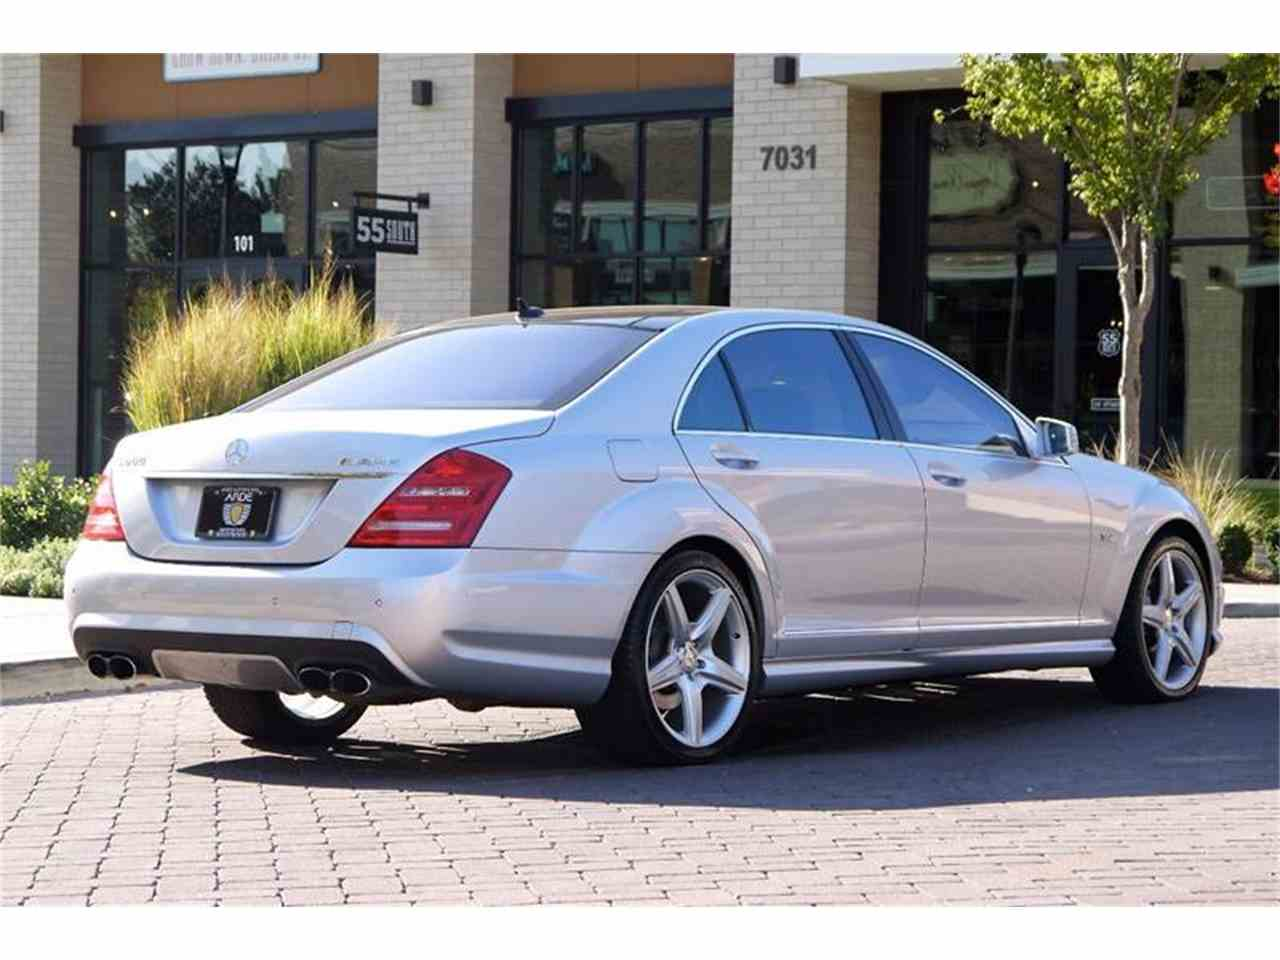 Large Picture of 2010 S-Class located in Brentwood Tennessee Auction Vehicle Offered by Arde Motorcars - M2NU